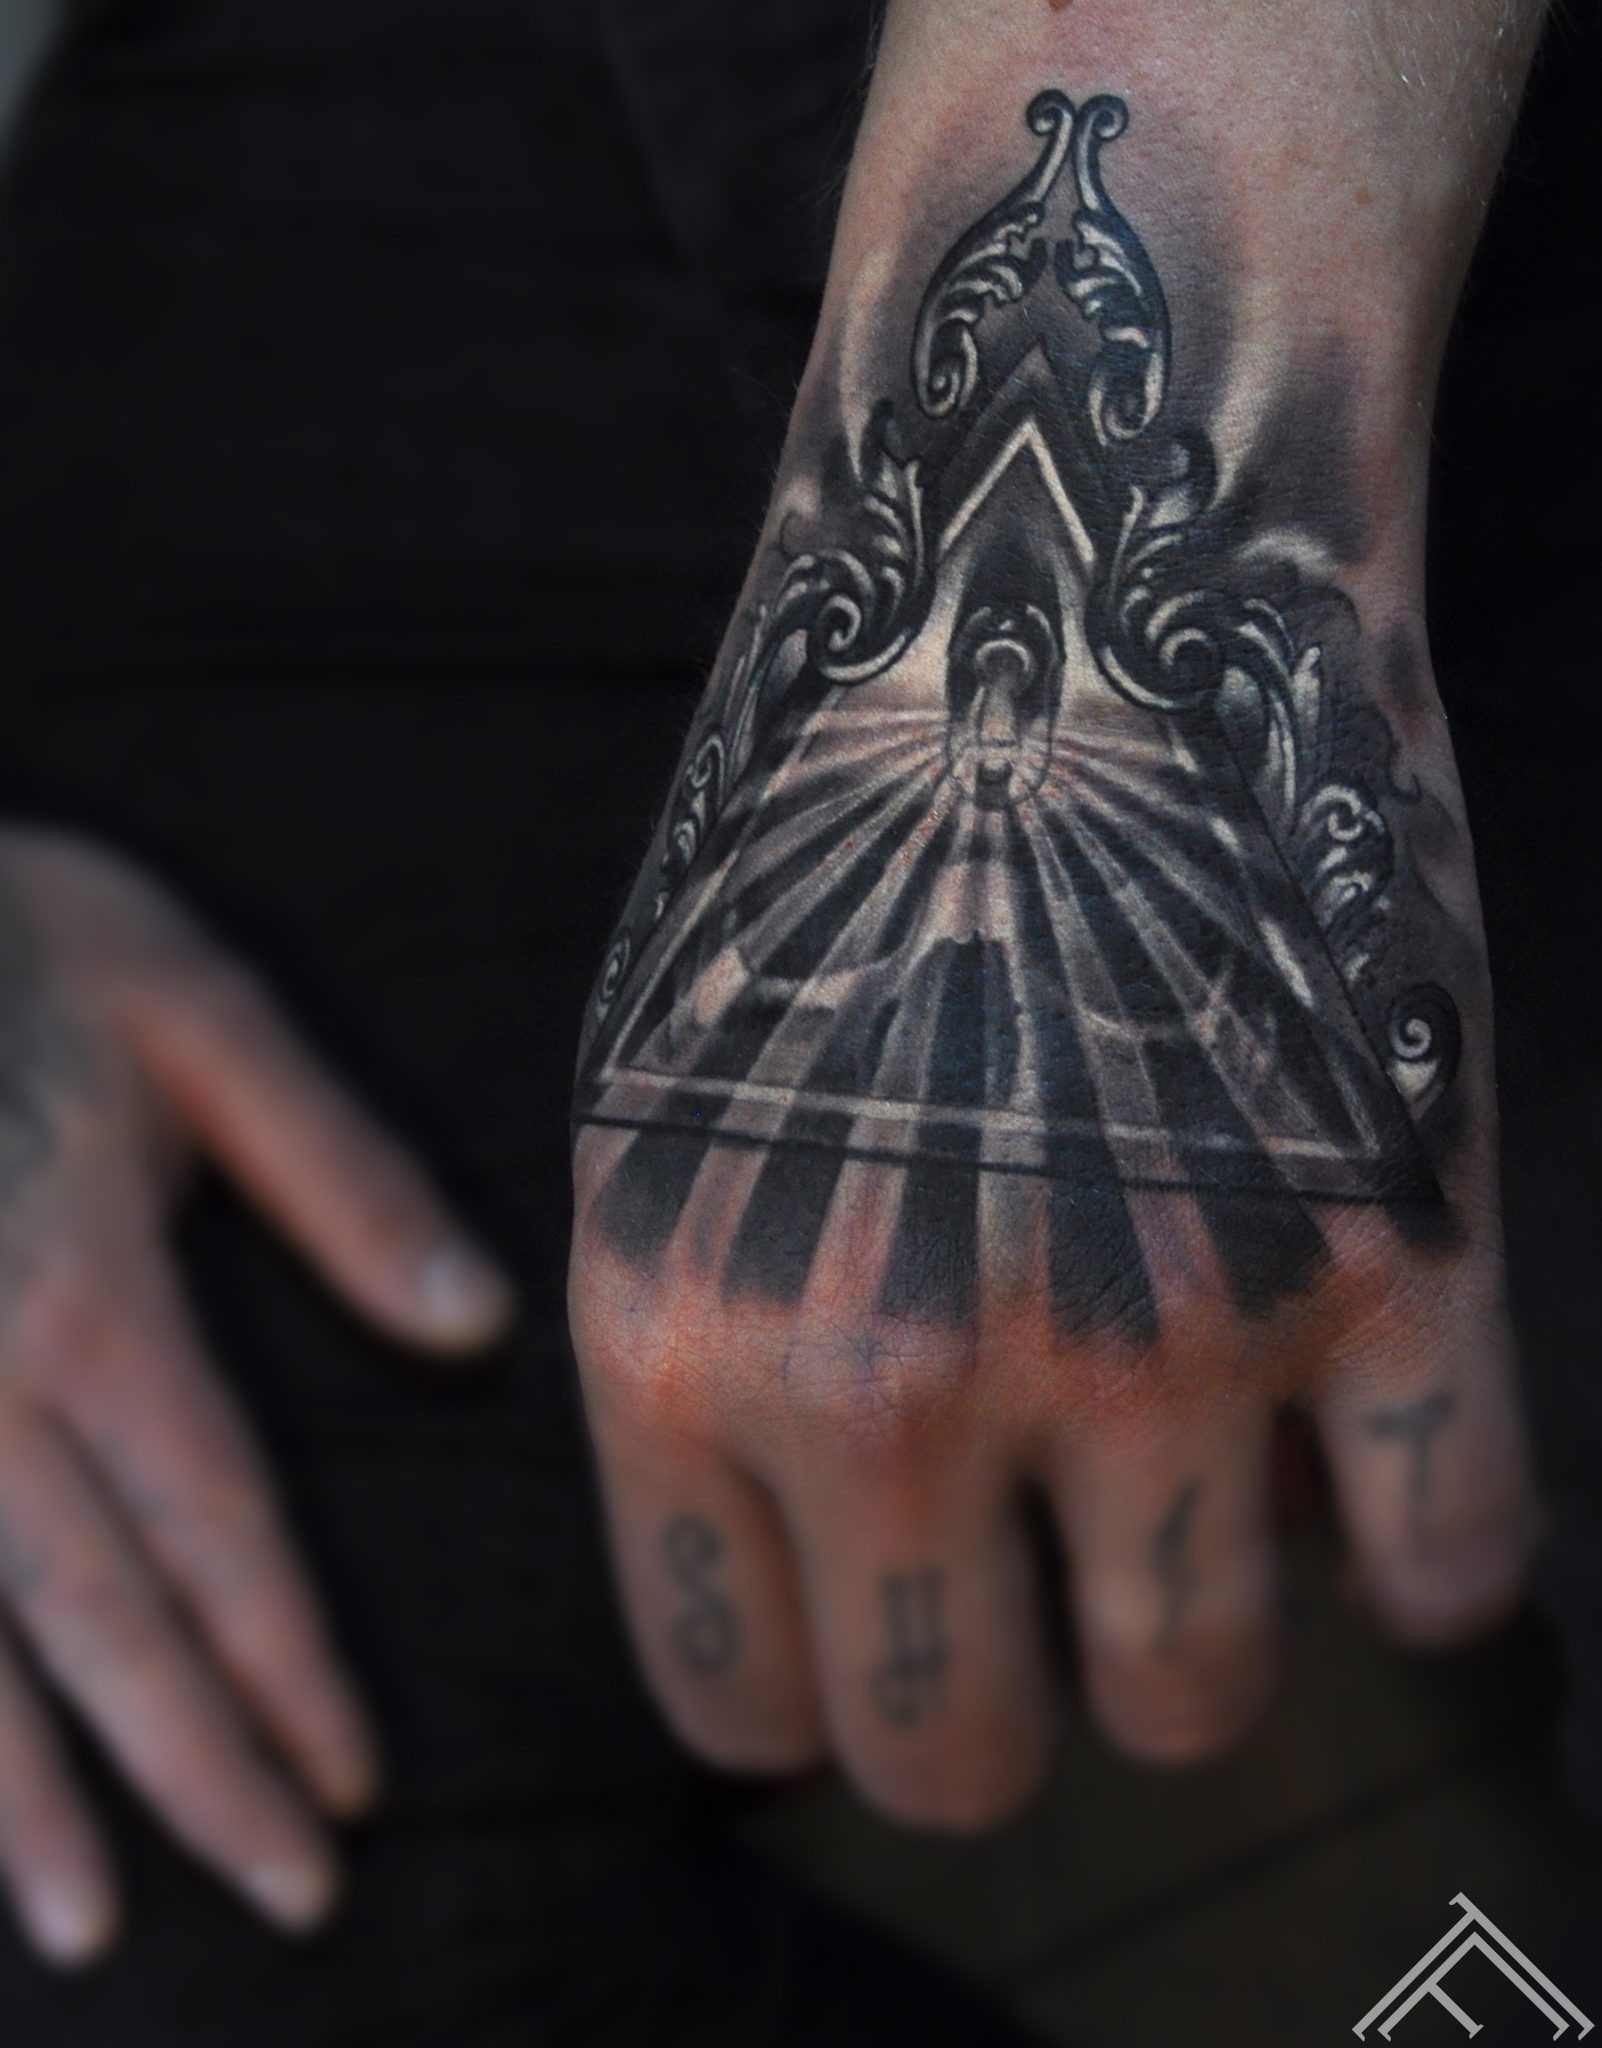 skull_triangle_baroque_keyhole_shining_light_tattoo_marispavlo_tattoofrequency_riga